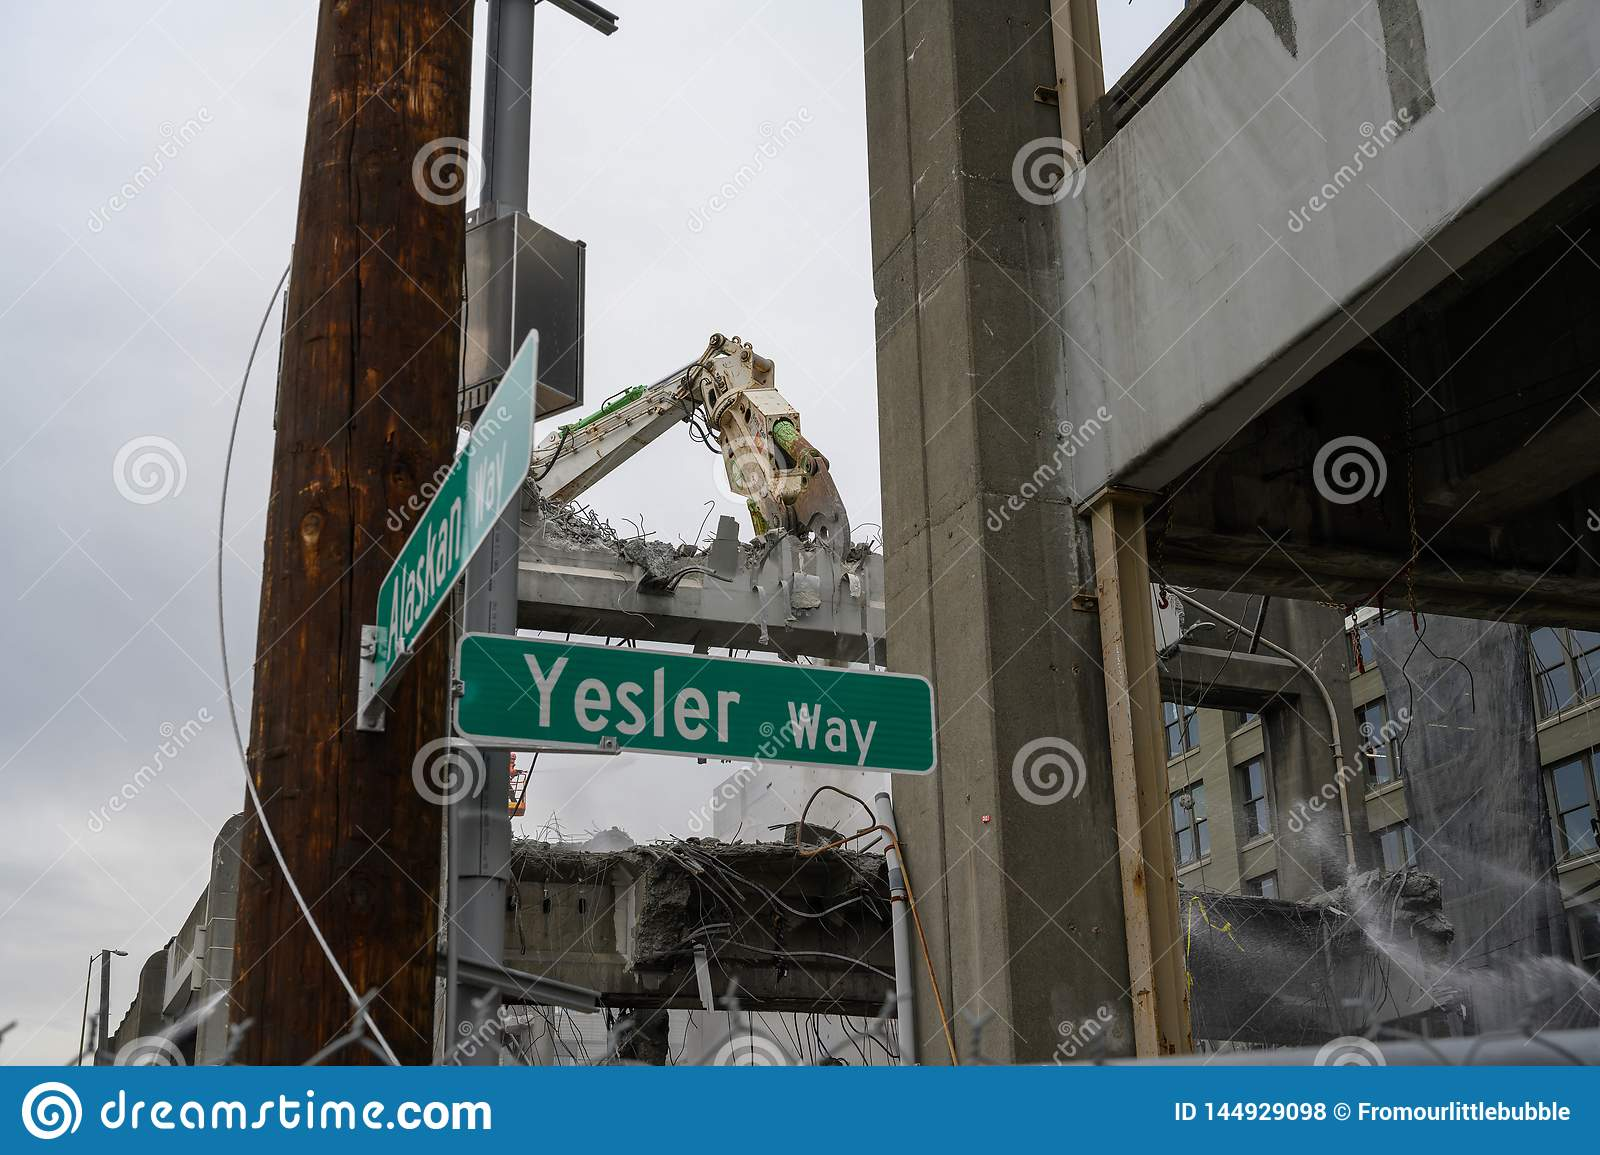 Seattle Viaduct demolition Alaskan & Yesler